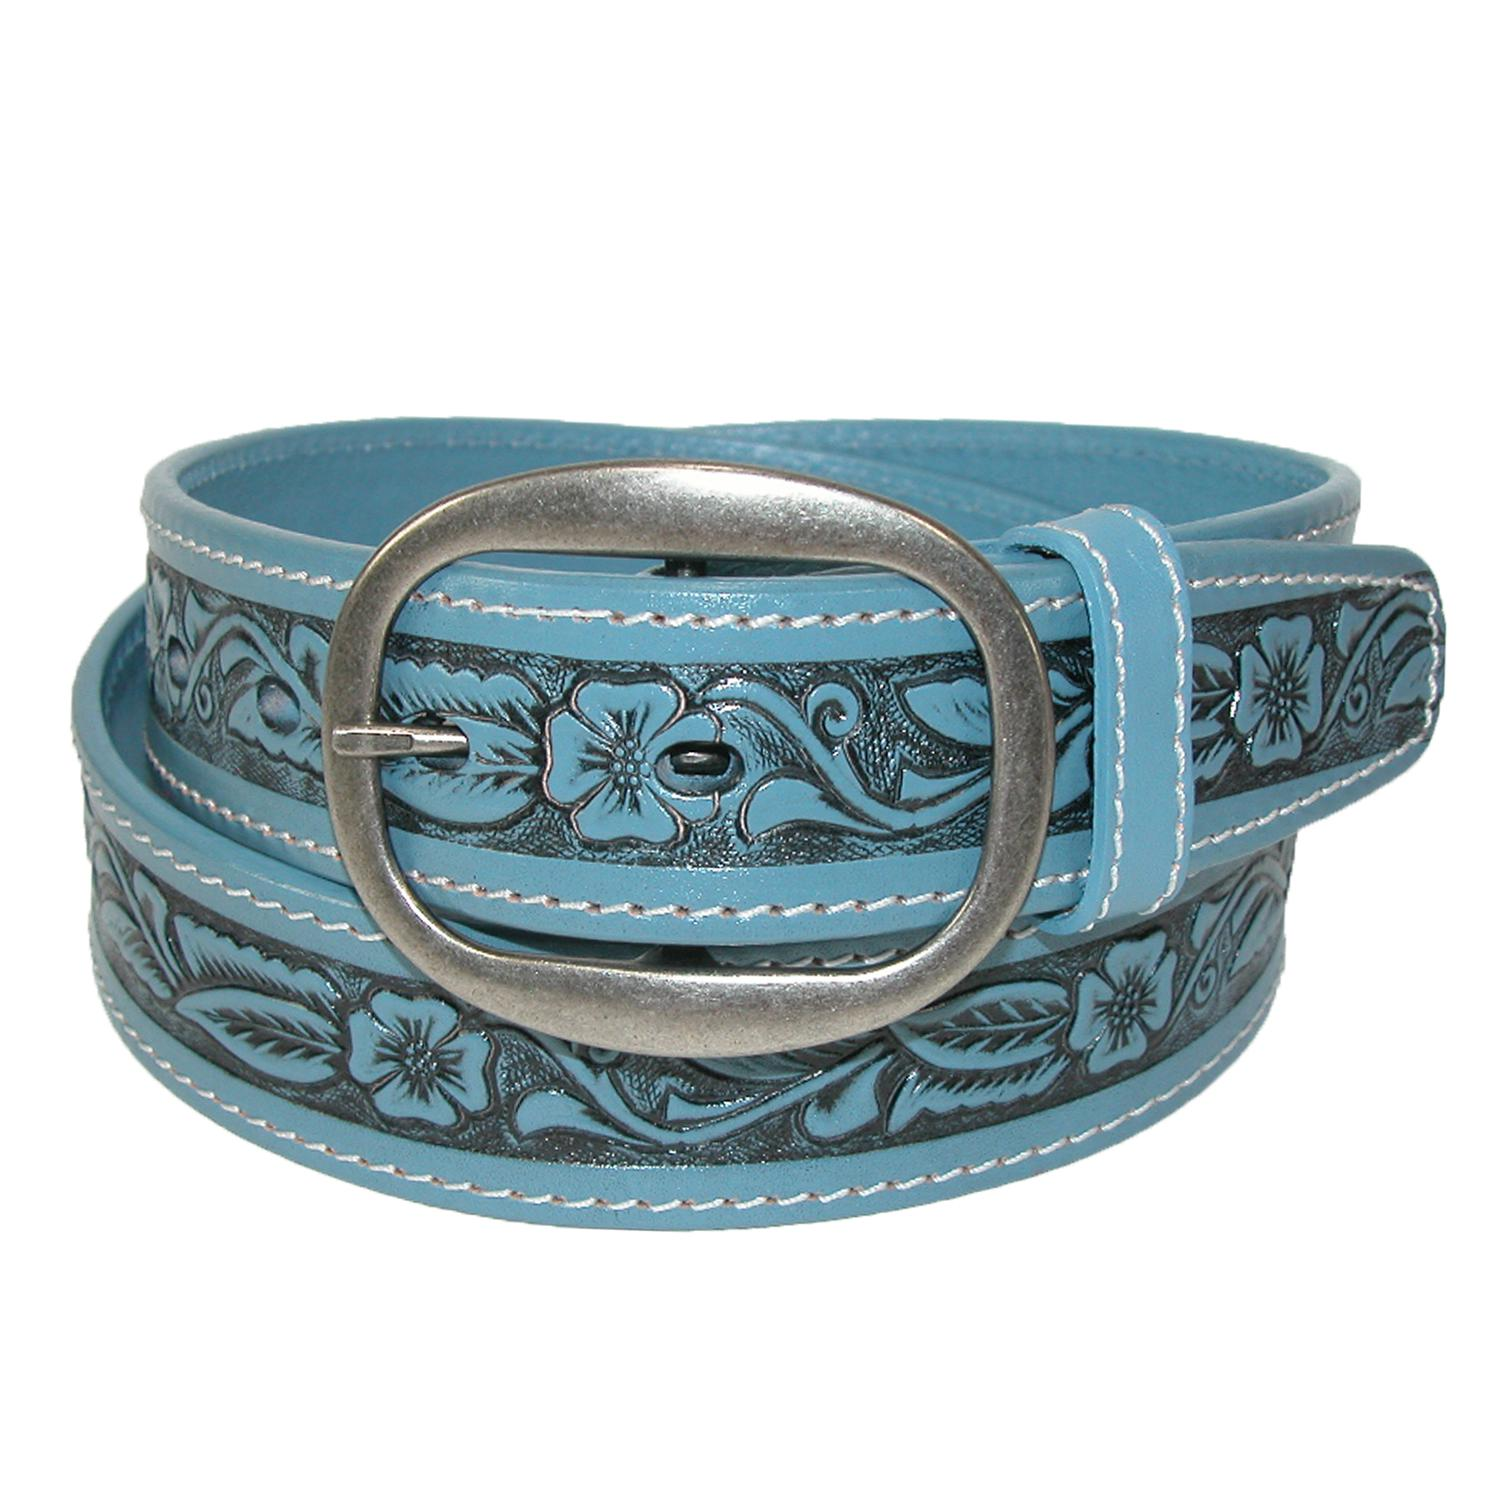 new ctm leather western embossed belt with removable